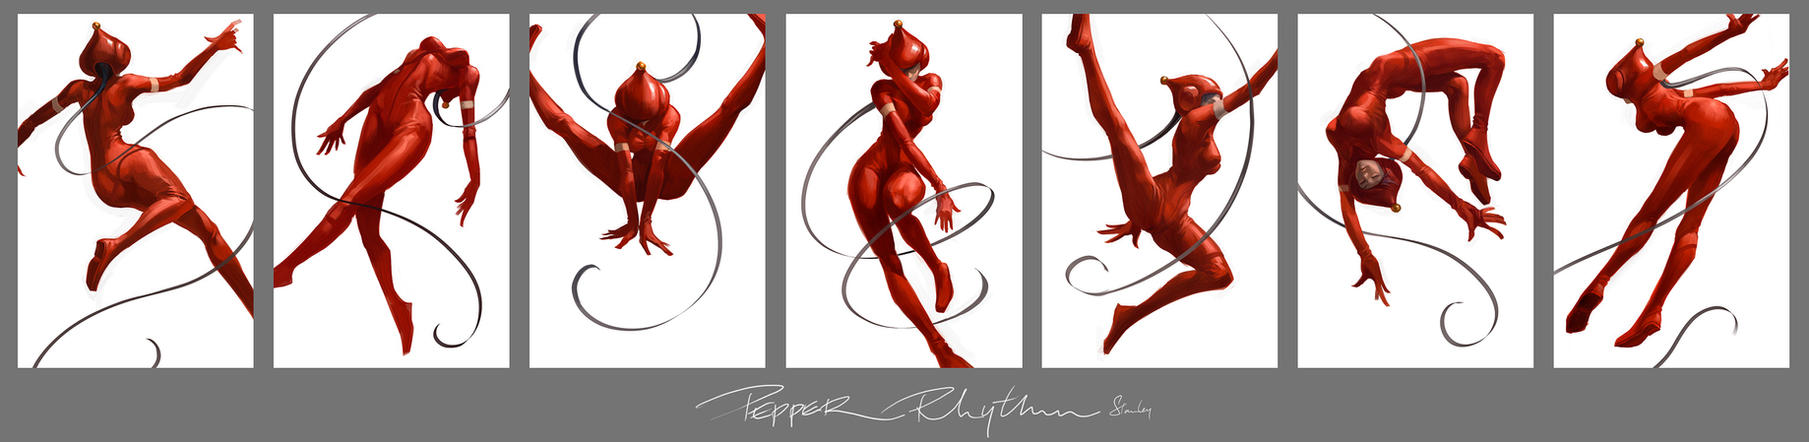 Pepper Rhythm by Artgerm